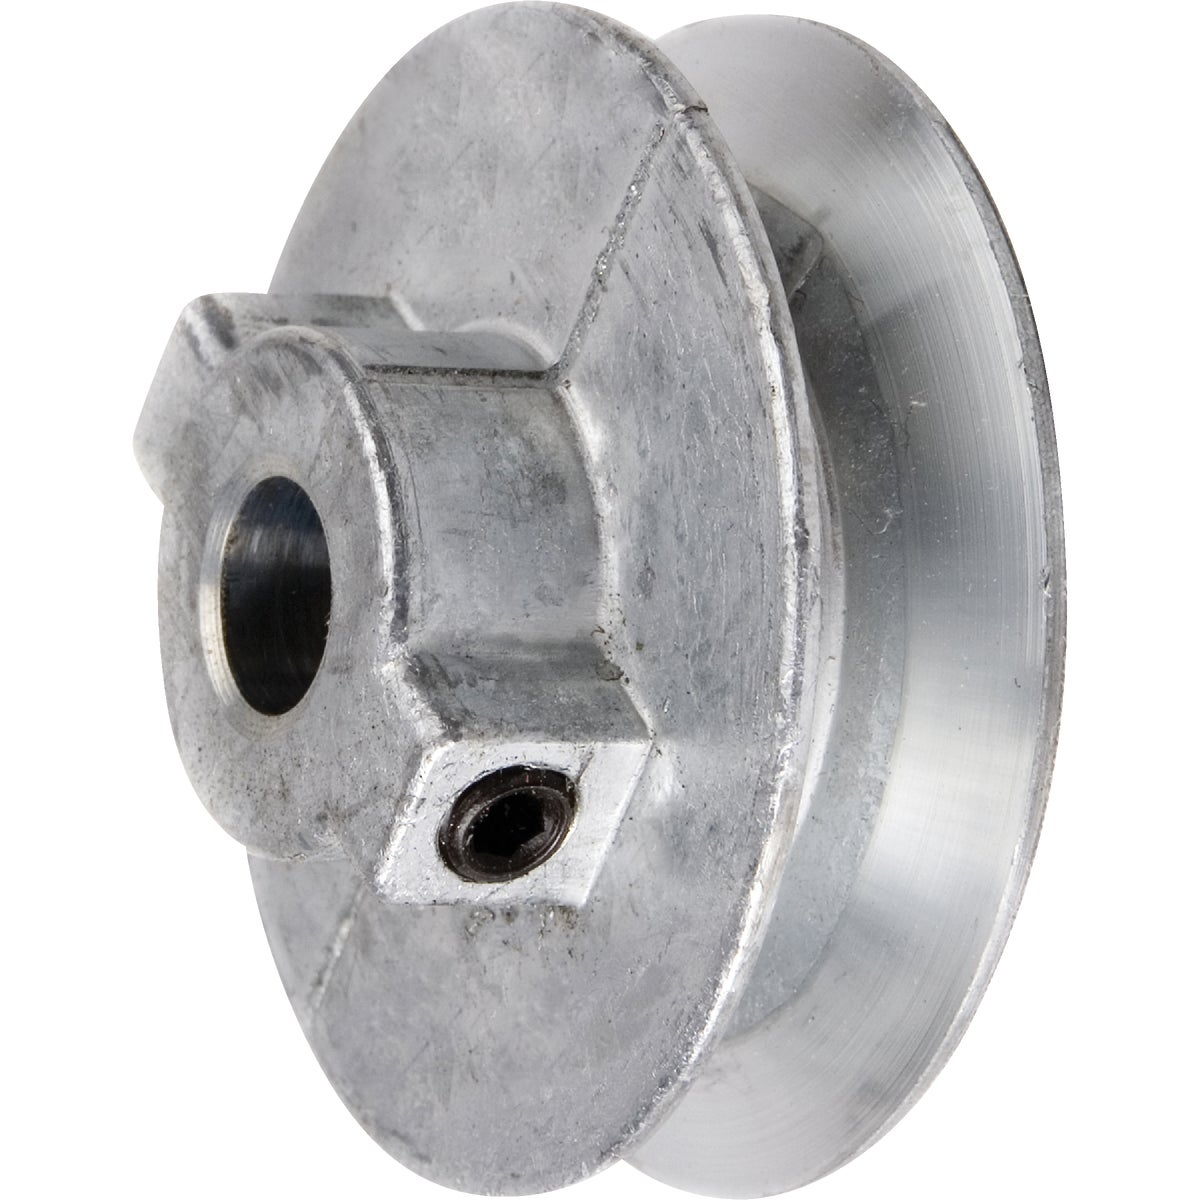 3-1/2X5/8 PULLEY - 350A6 by Chicago Die Casting